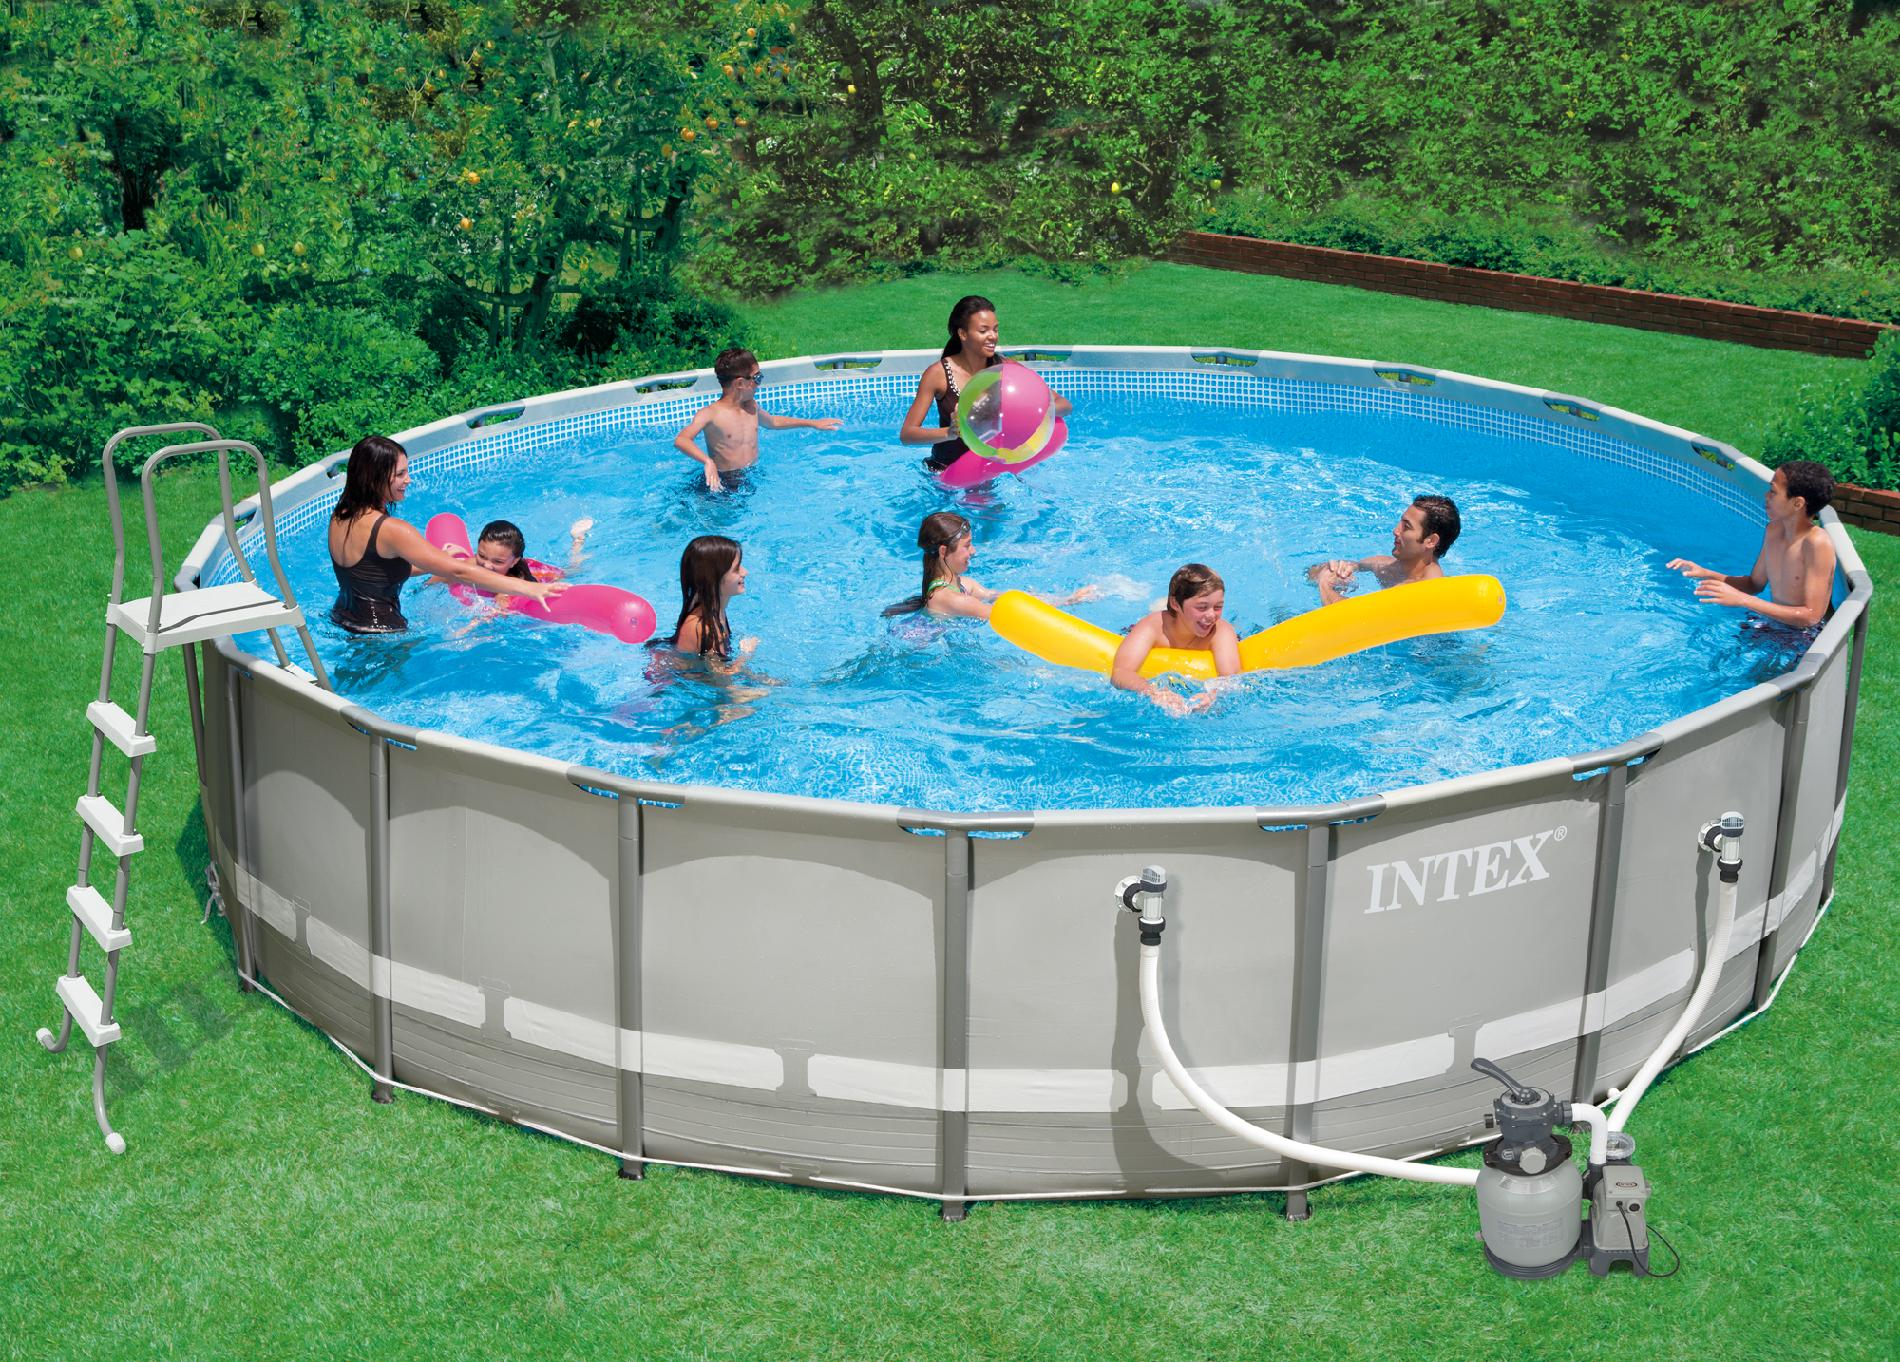 how-to-vacuum-intex-pool-with-sand-filter